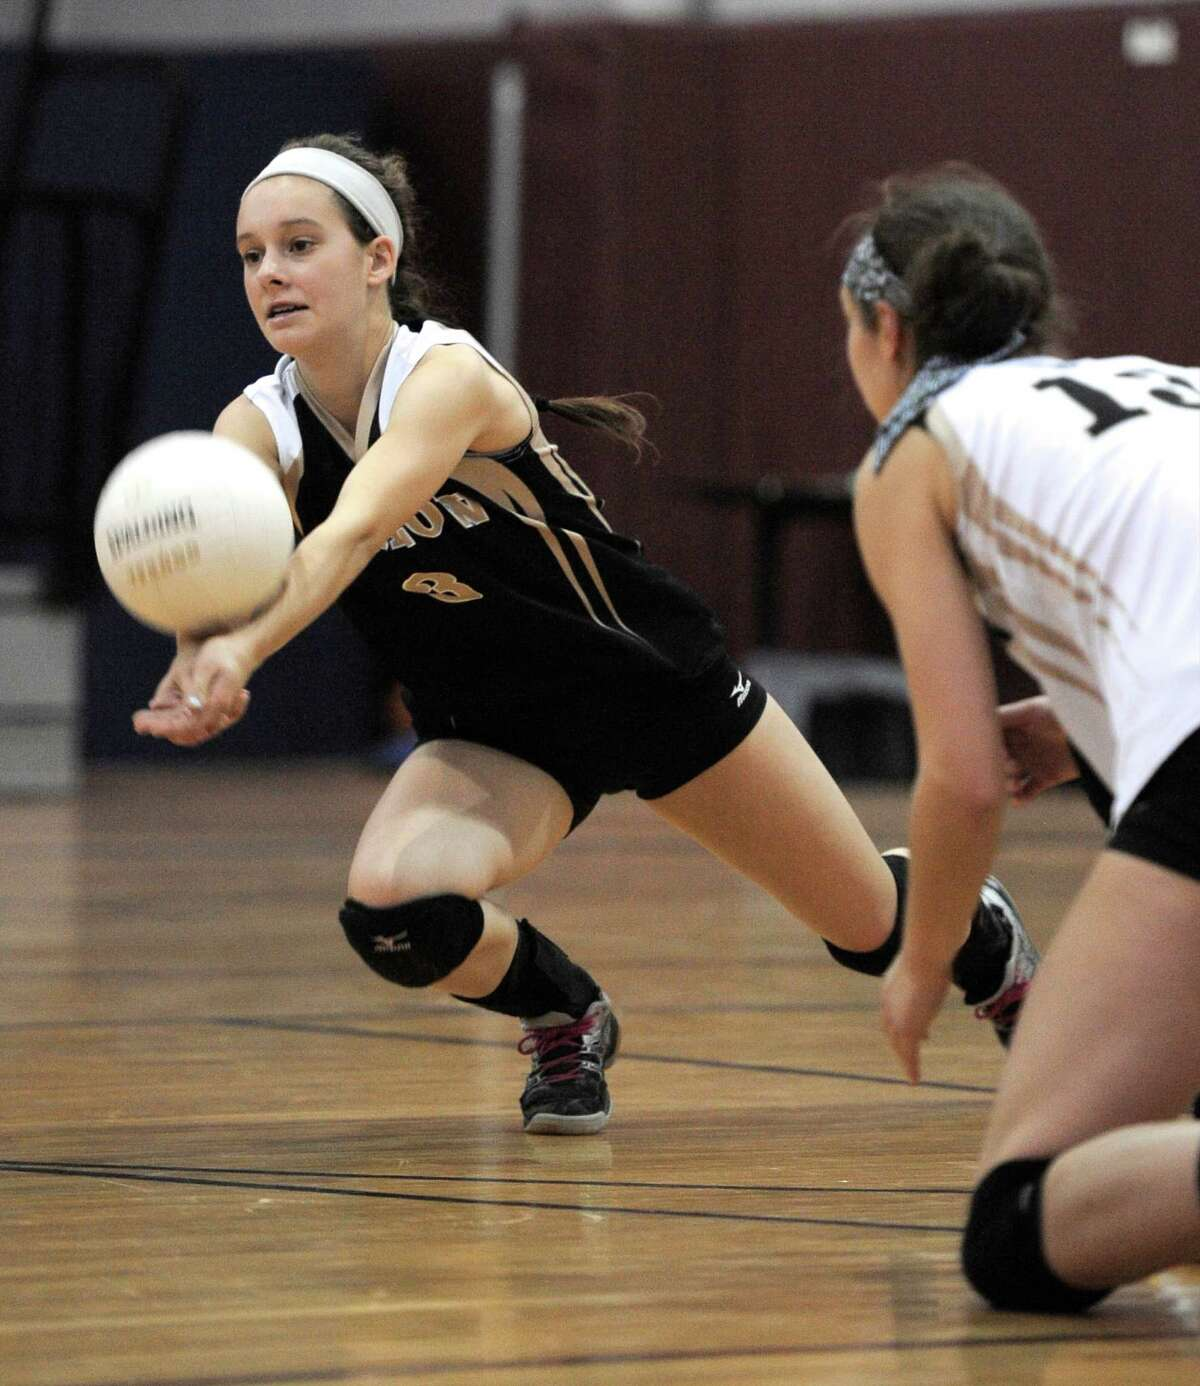 Barlow's Kristen Acocella (3) dives for the ball as team mate Kaitlyn Matino (13) looks on during the SWC girls volleyball Championship match between Weston and Joel Barlow high schools, on Saturday night, November 1, 2014.